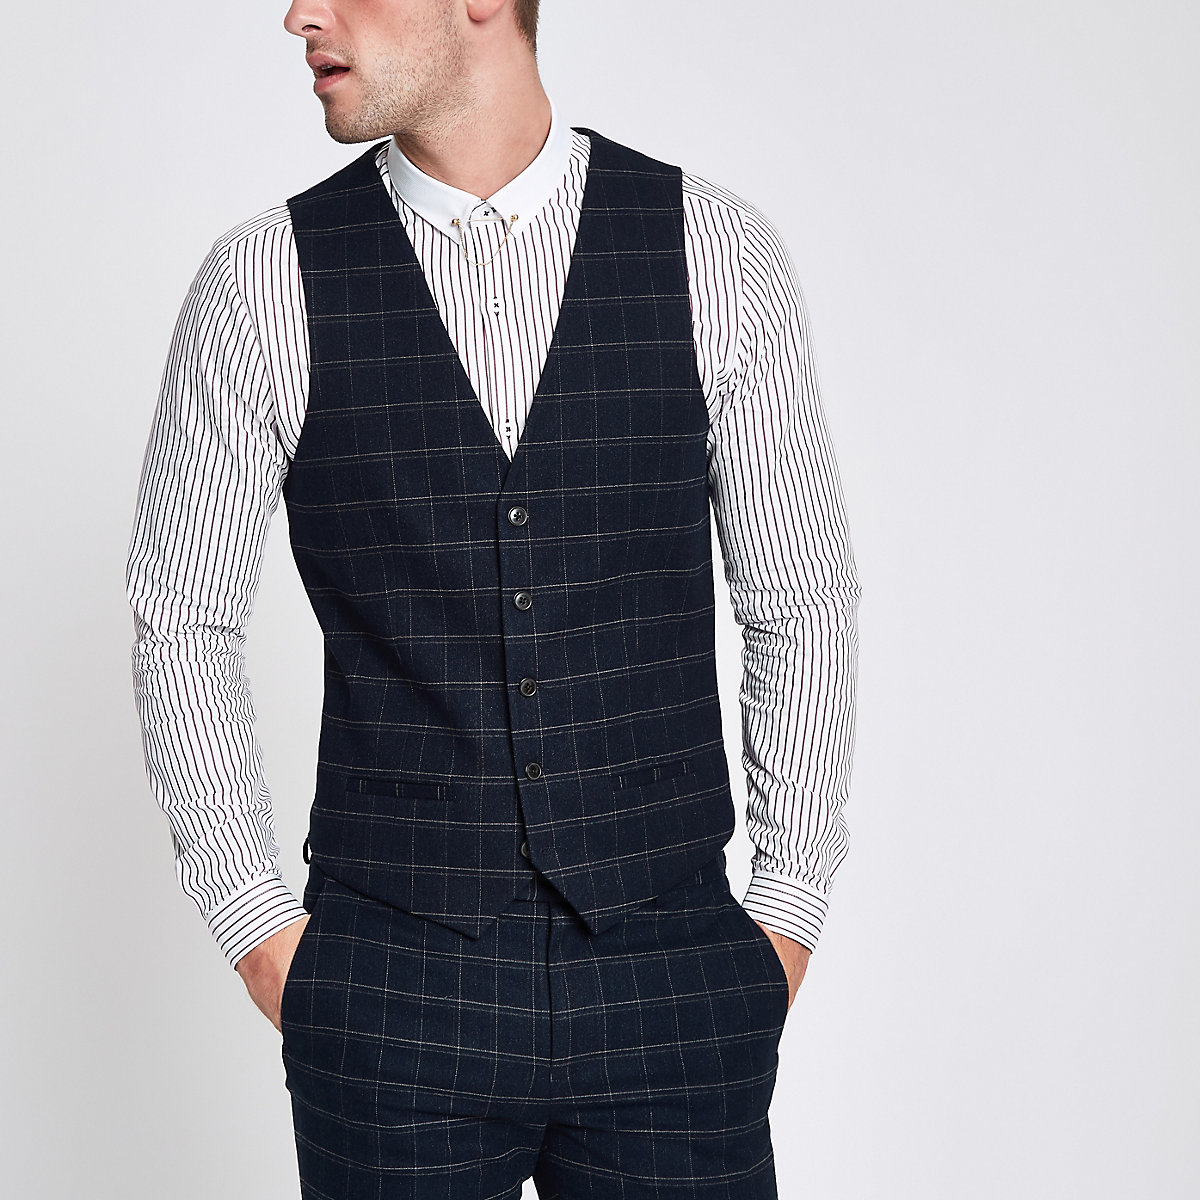 Navy window pane check vest